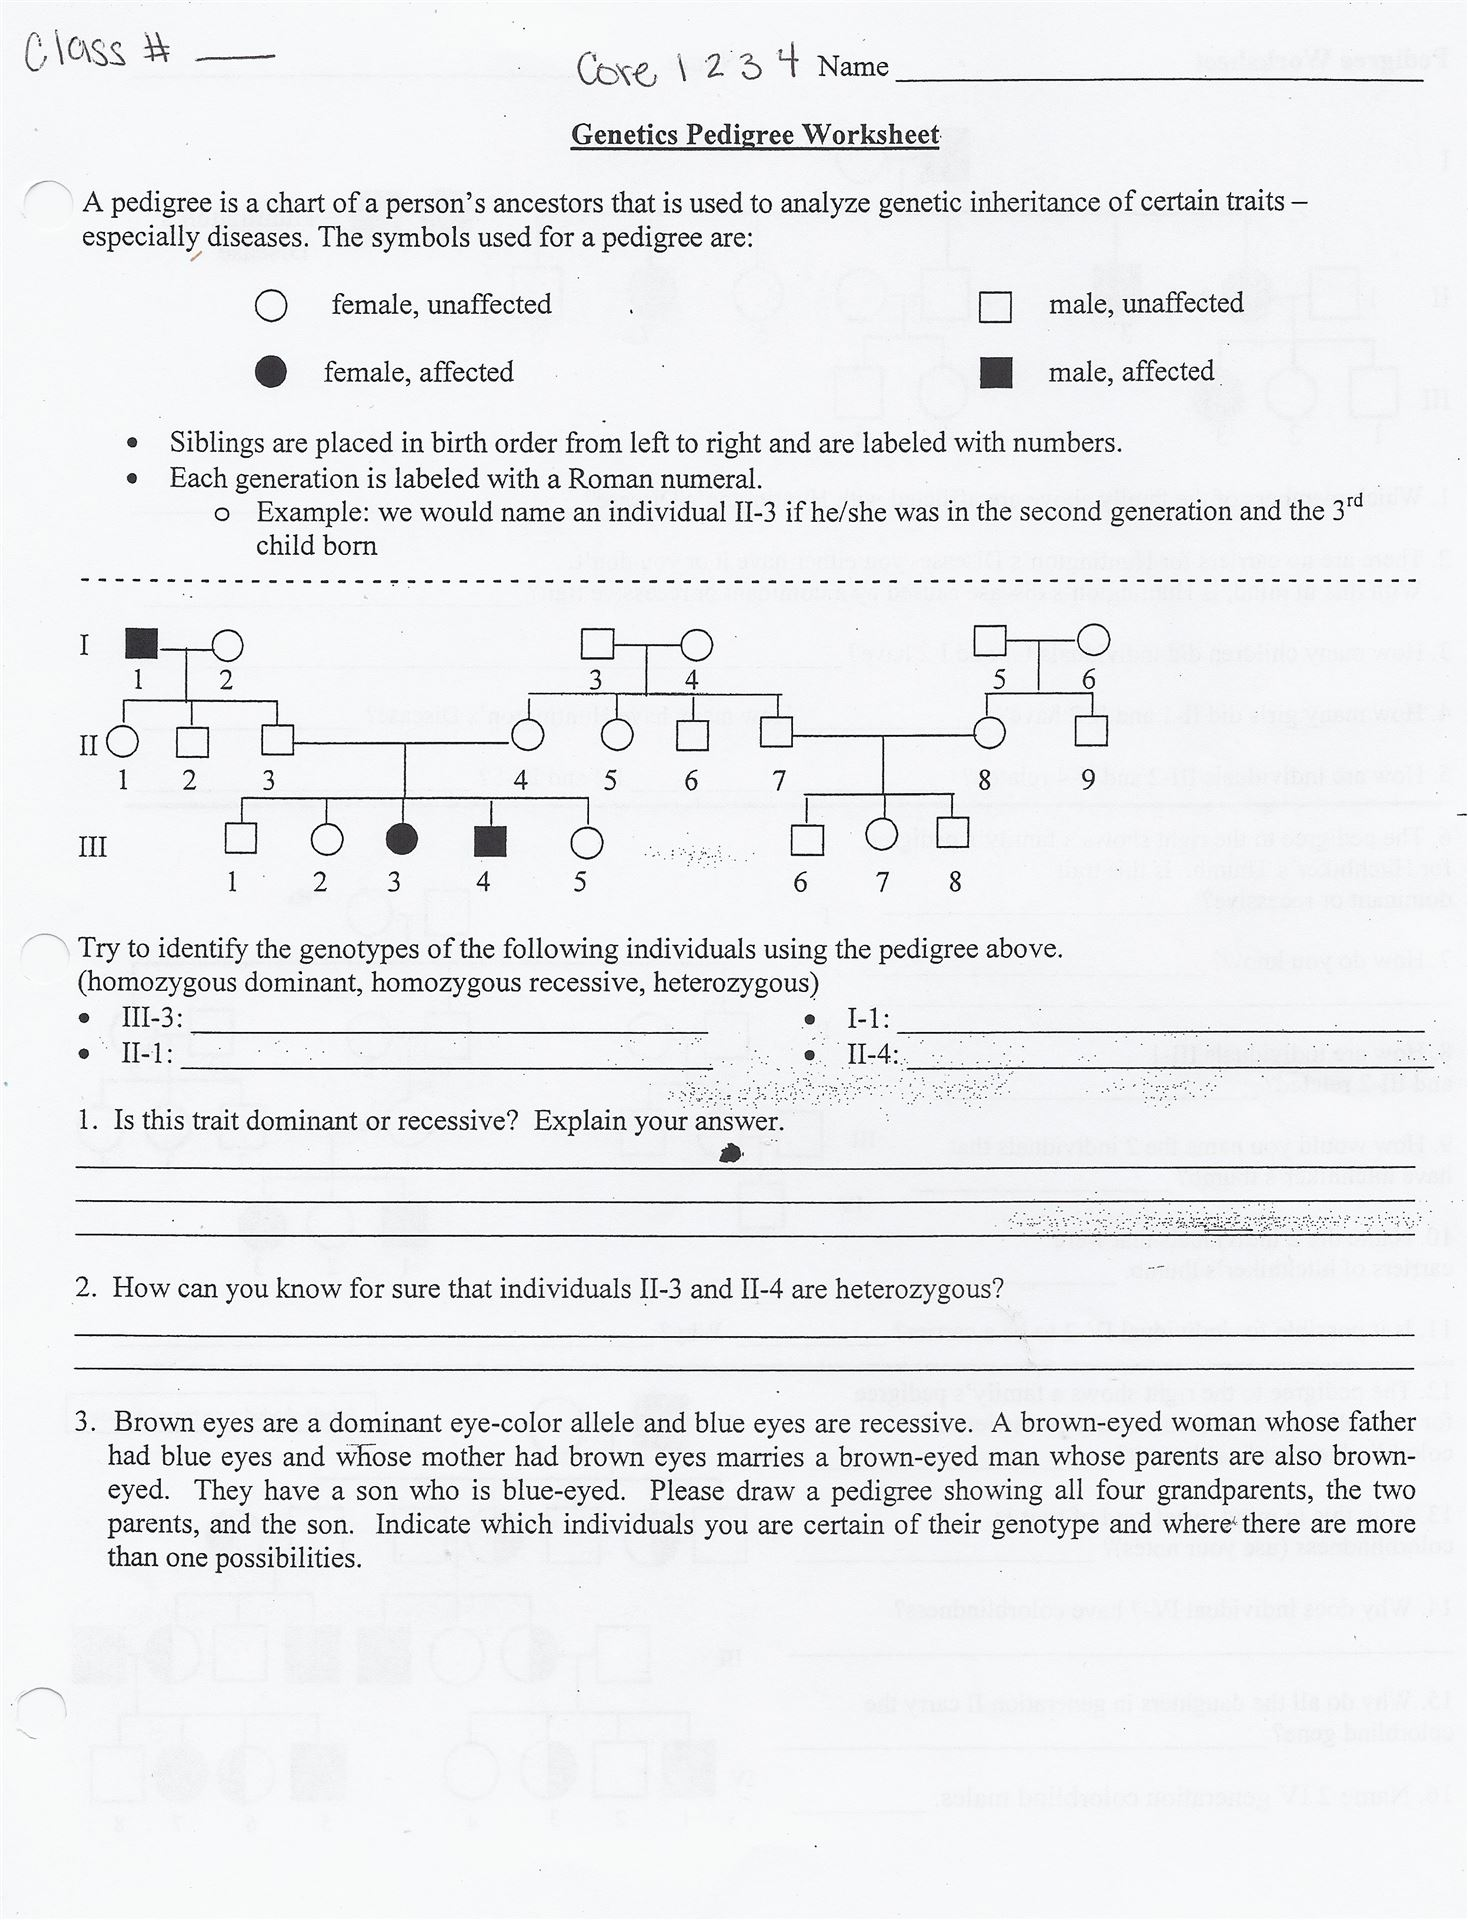 Printables Pedigree Worksheet pedigree worksheet imperialdesignstudio answer key on genetics answers